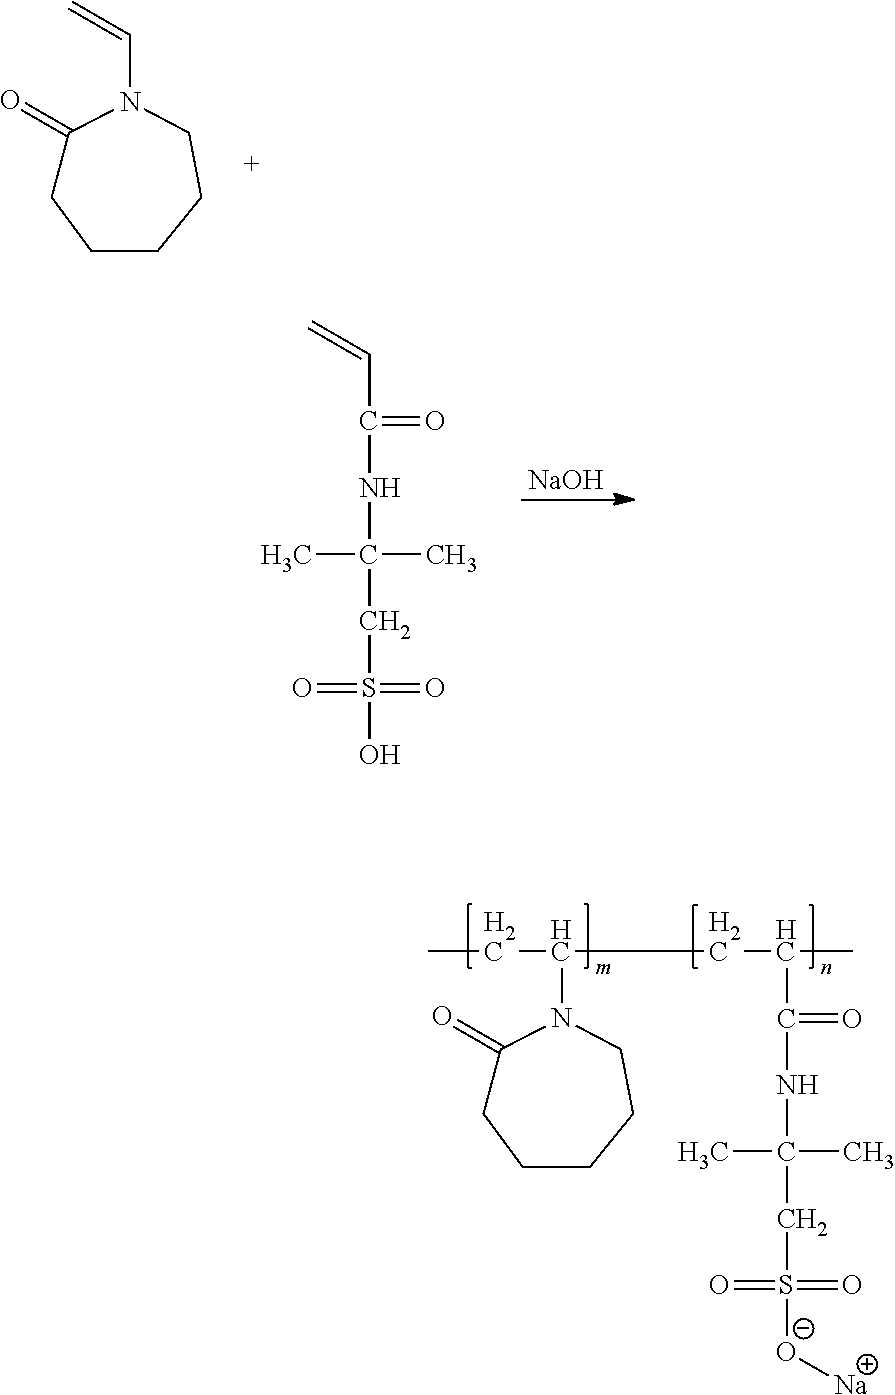 Us20130123147a1 Polymers Having Acid And Amide Moieties